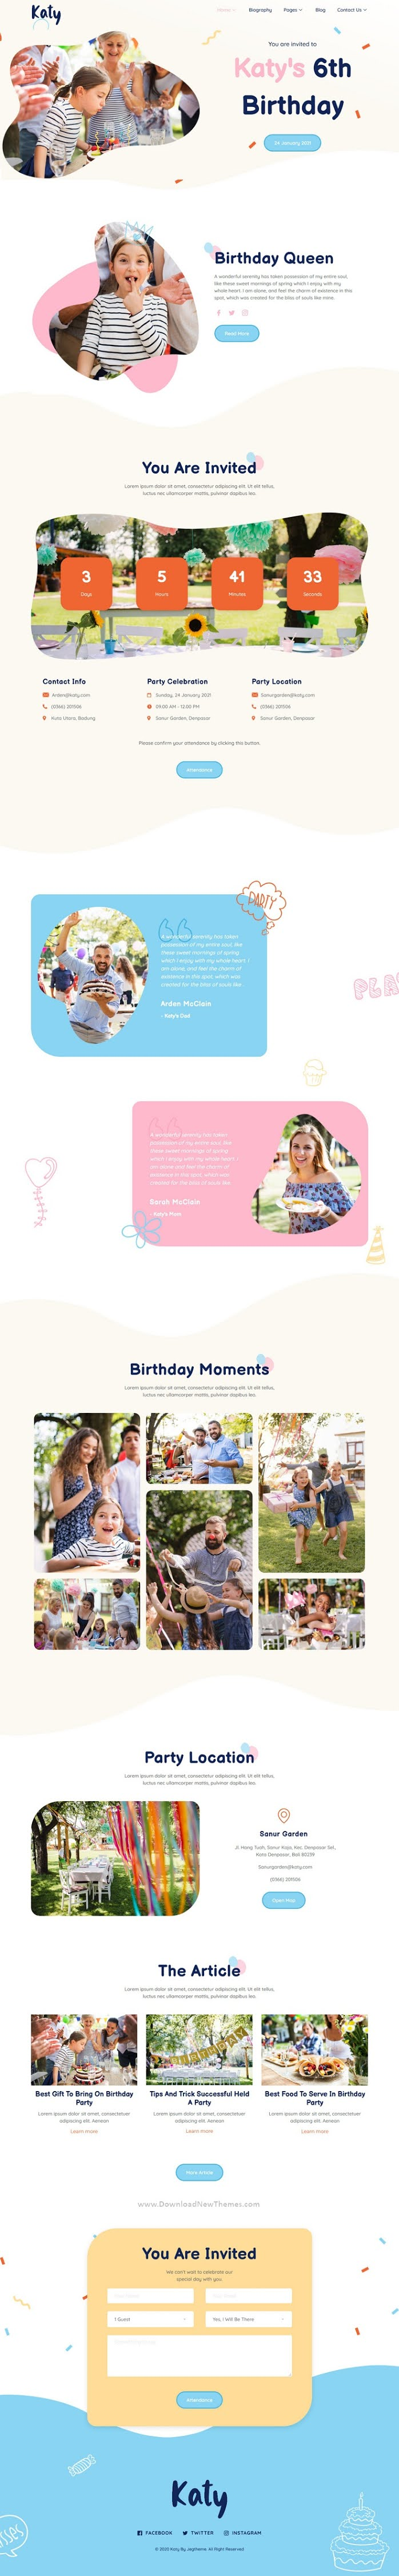 Kids Birthday Party Planner and Invitation Elementor Template Kit